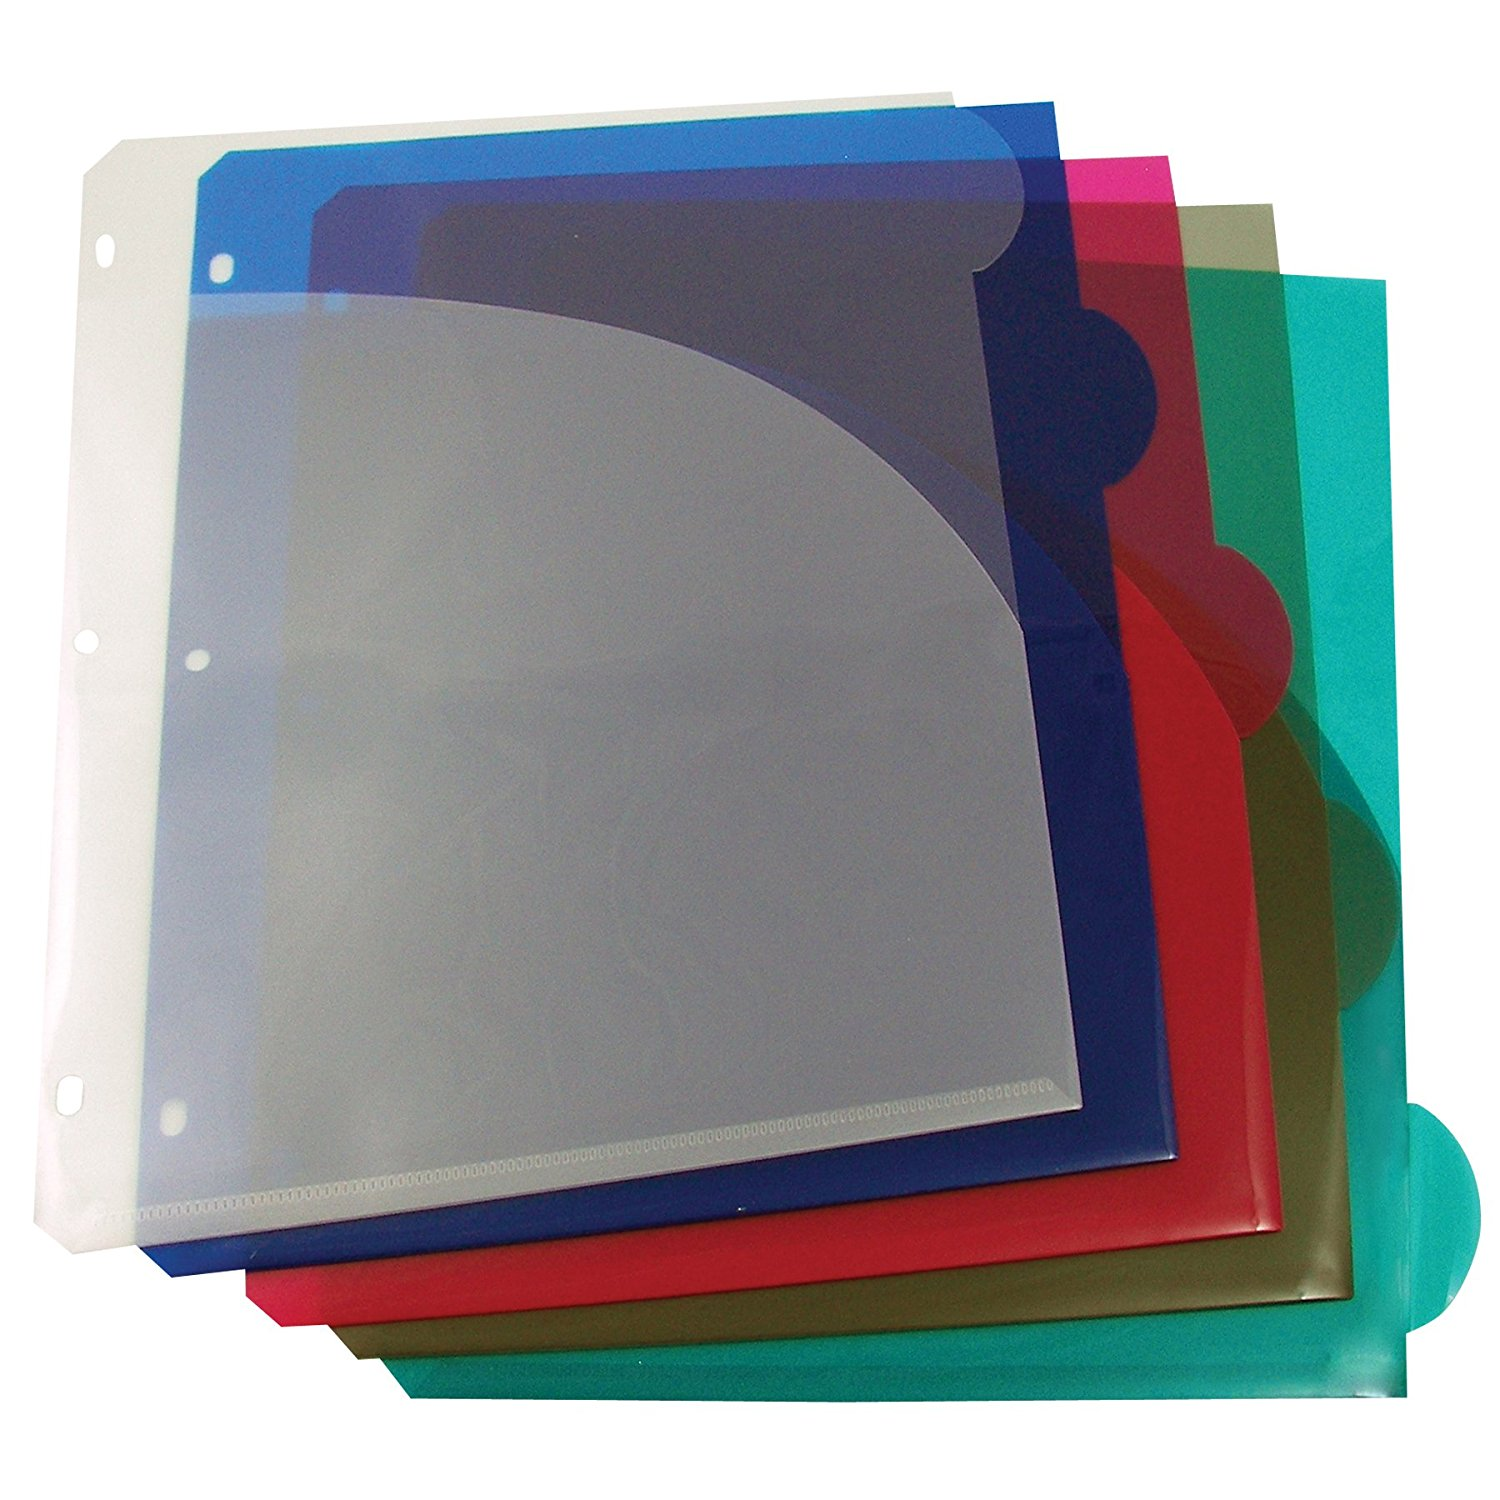 C-Line Biodegradable Colored Tab Poly Index Dividers with Slant Pockets, Letter Size, Fits 3-Ring Binders, Multi-Color, One 5-Tab Set (05460)